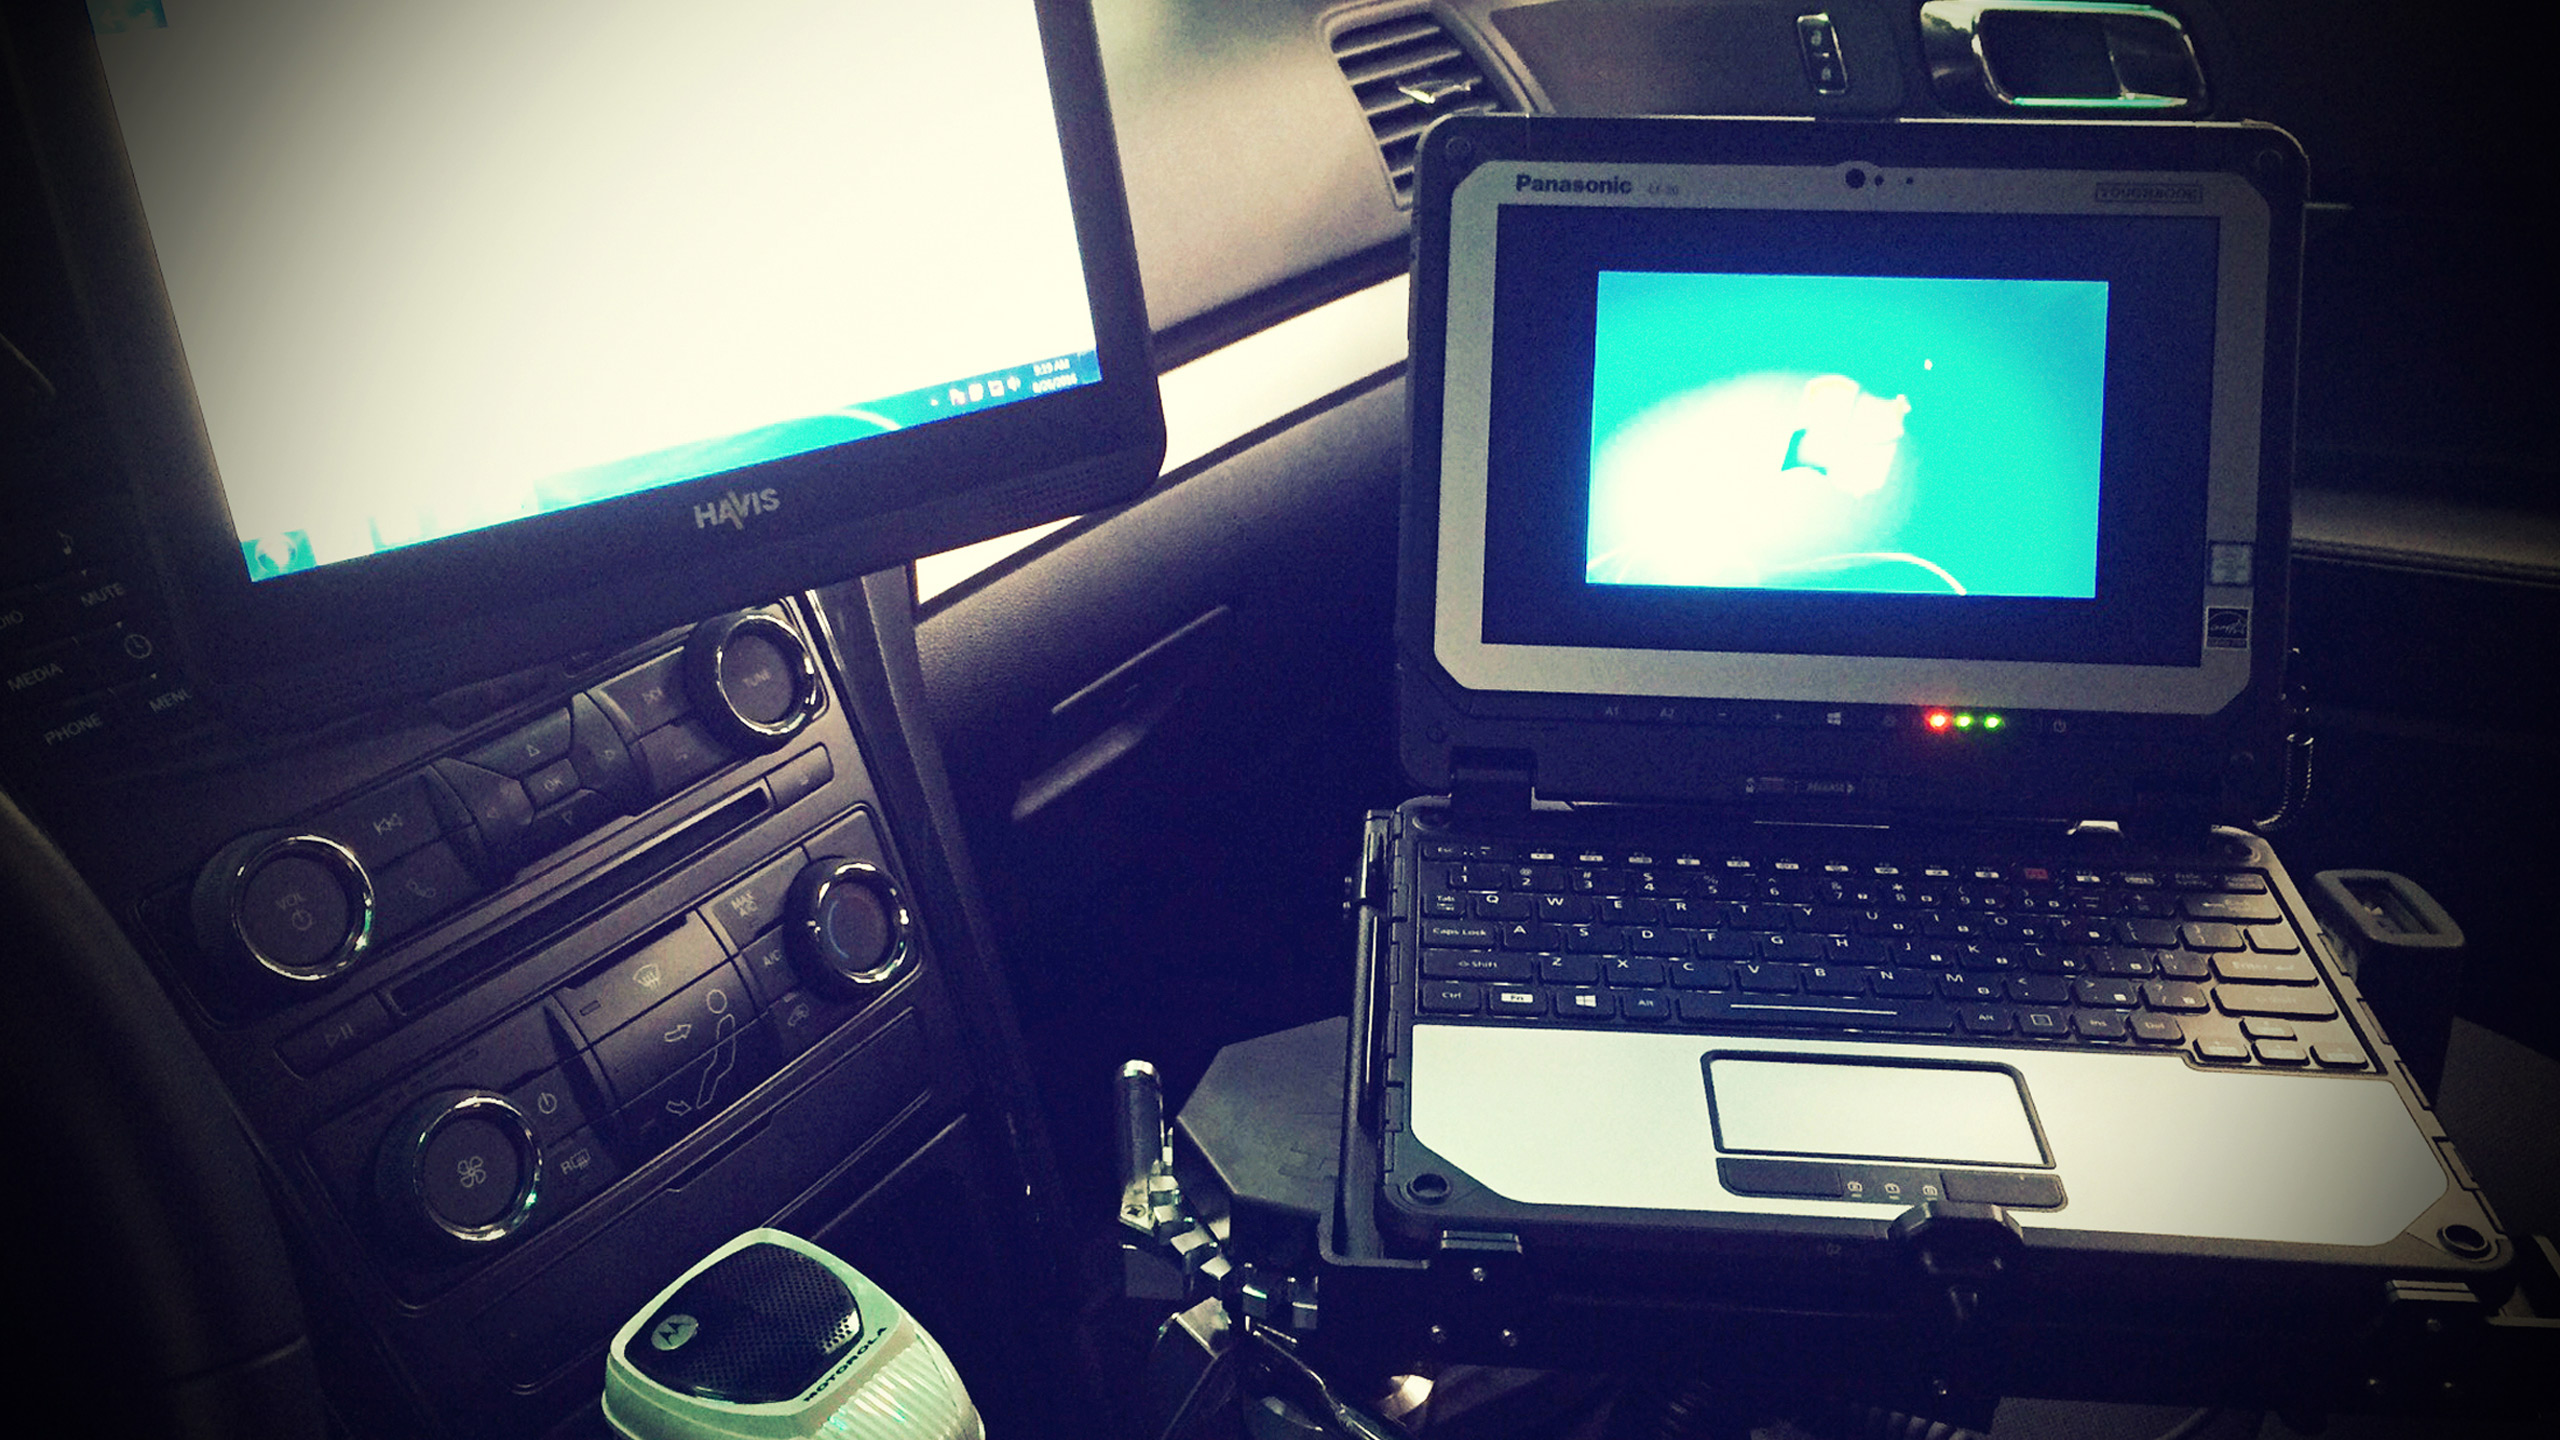 Panasonic Toughbook and Havis Screen setup in police cruiser